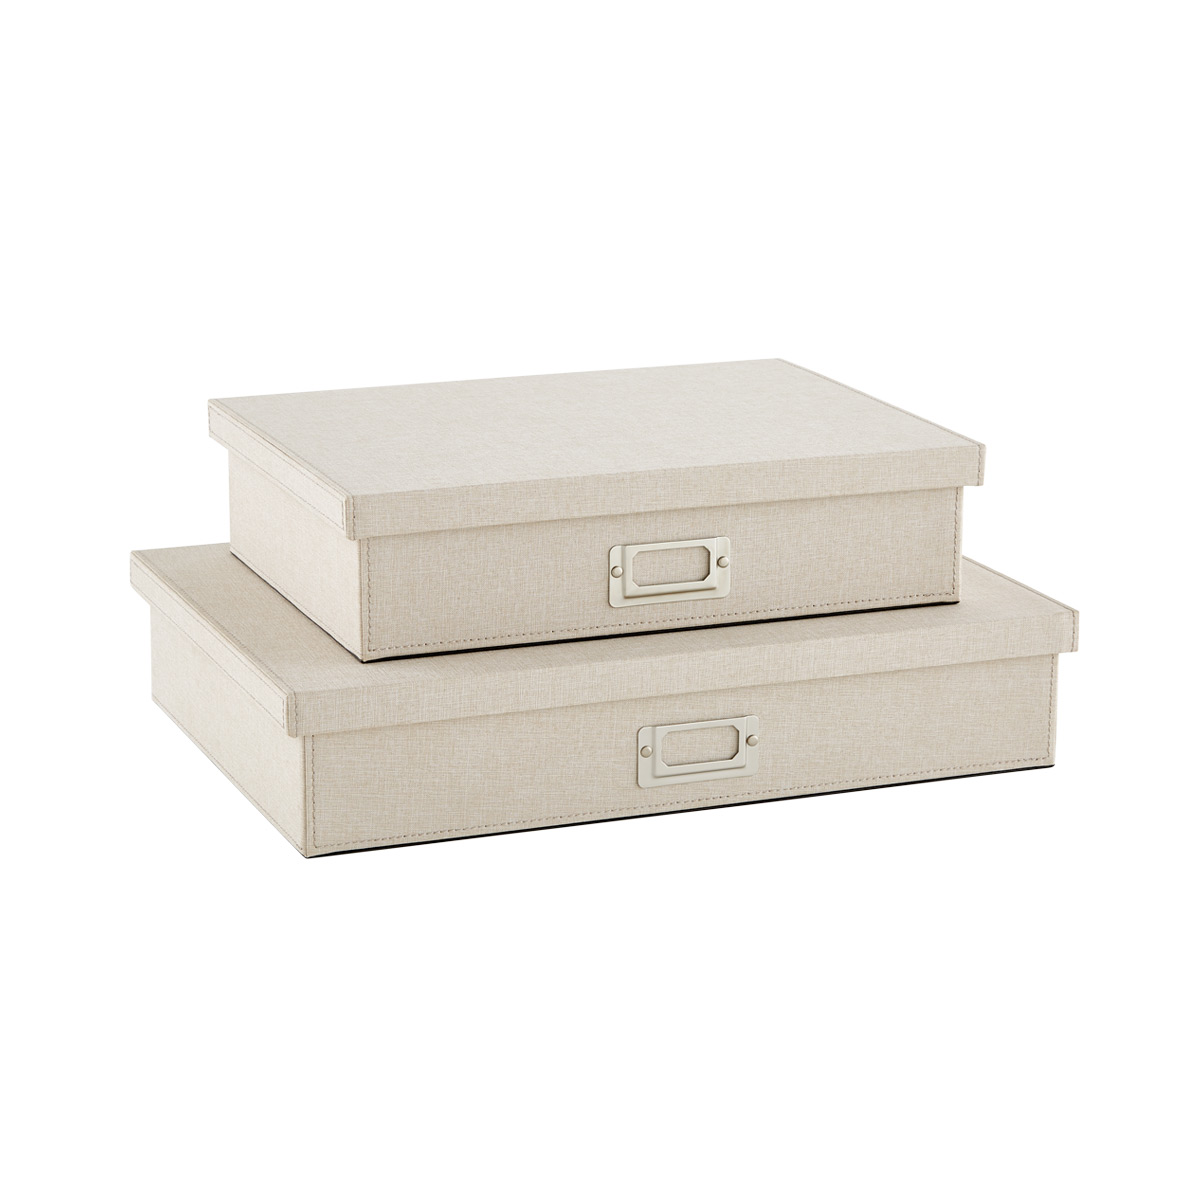 Incroyable Bristol Linen Flax Office Storage Boxes ...